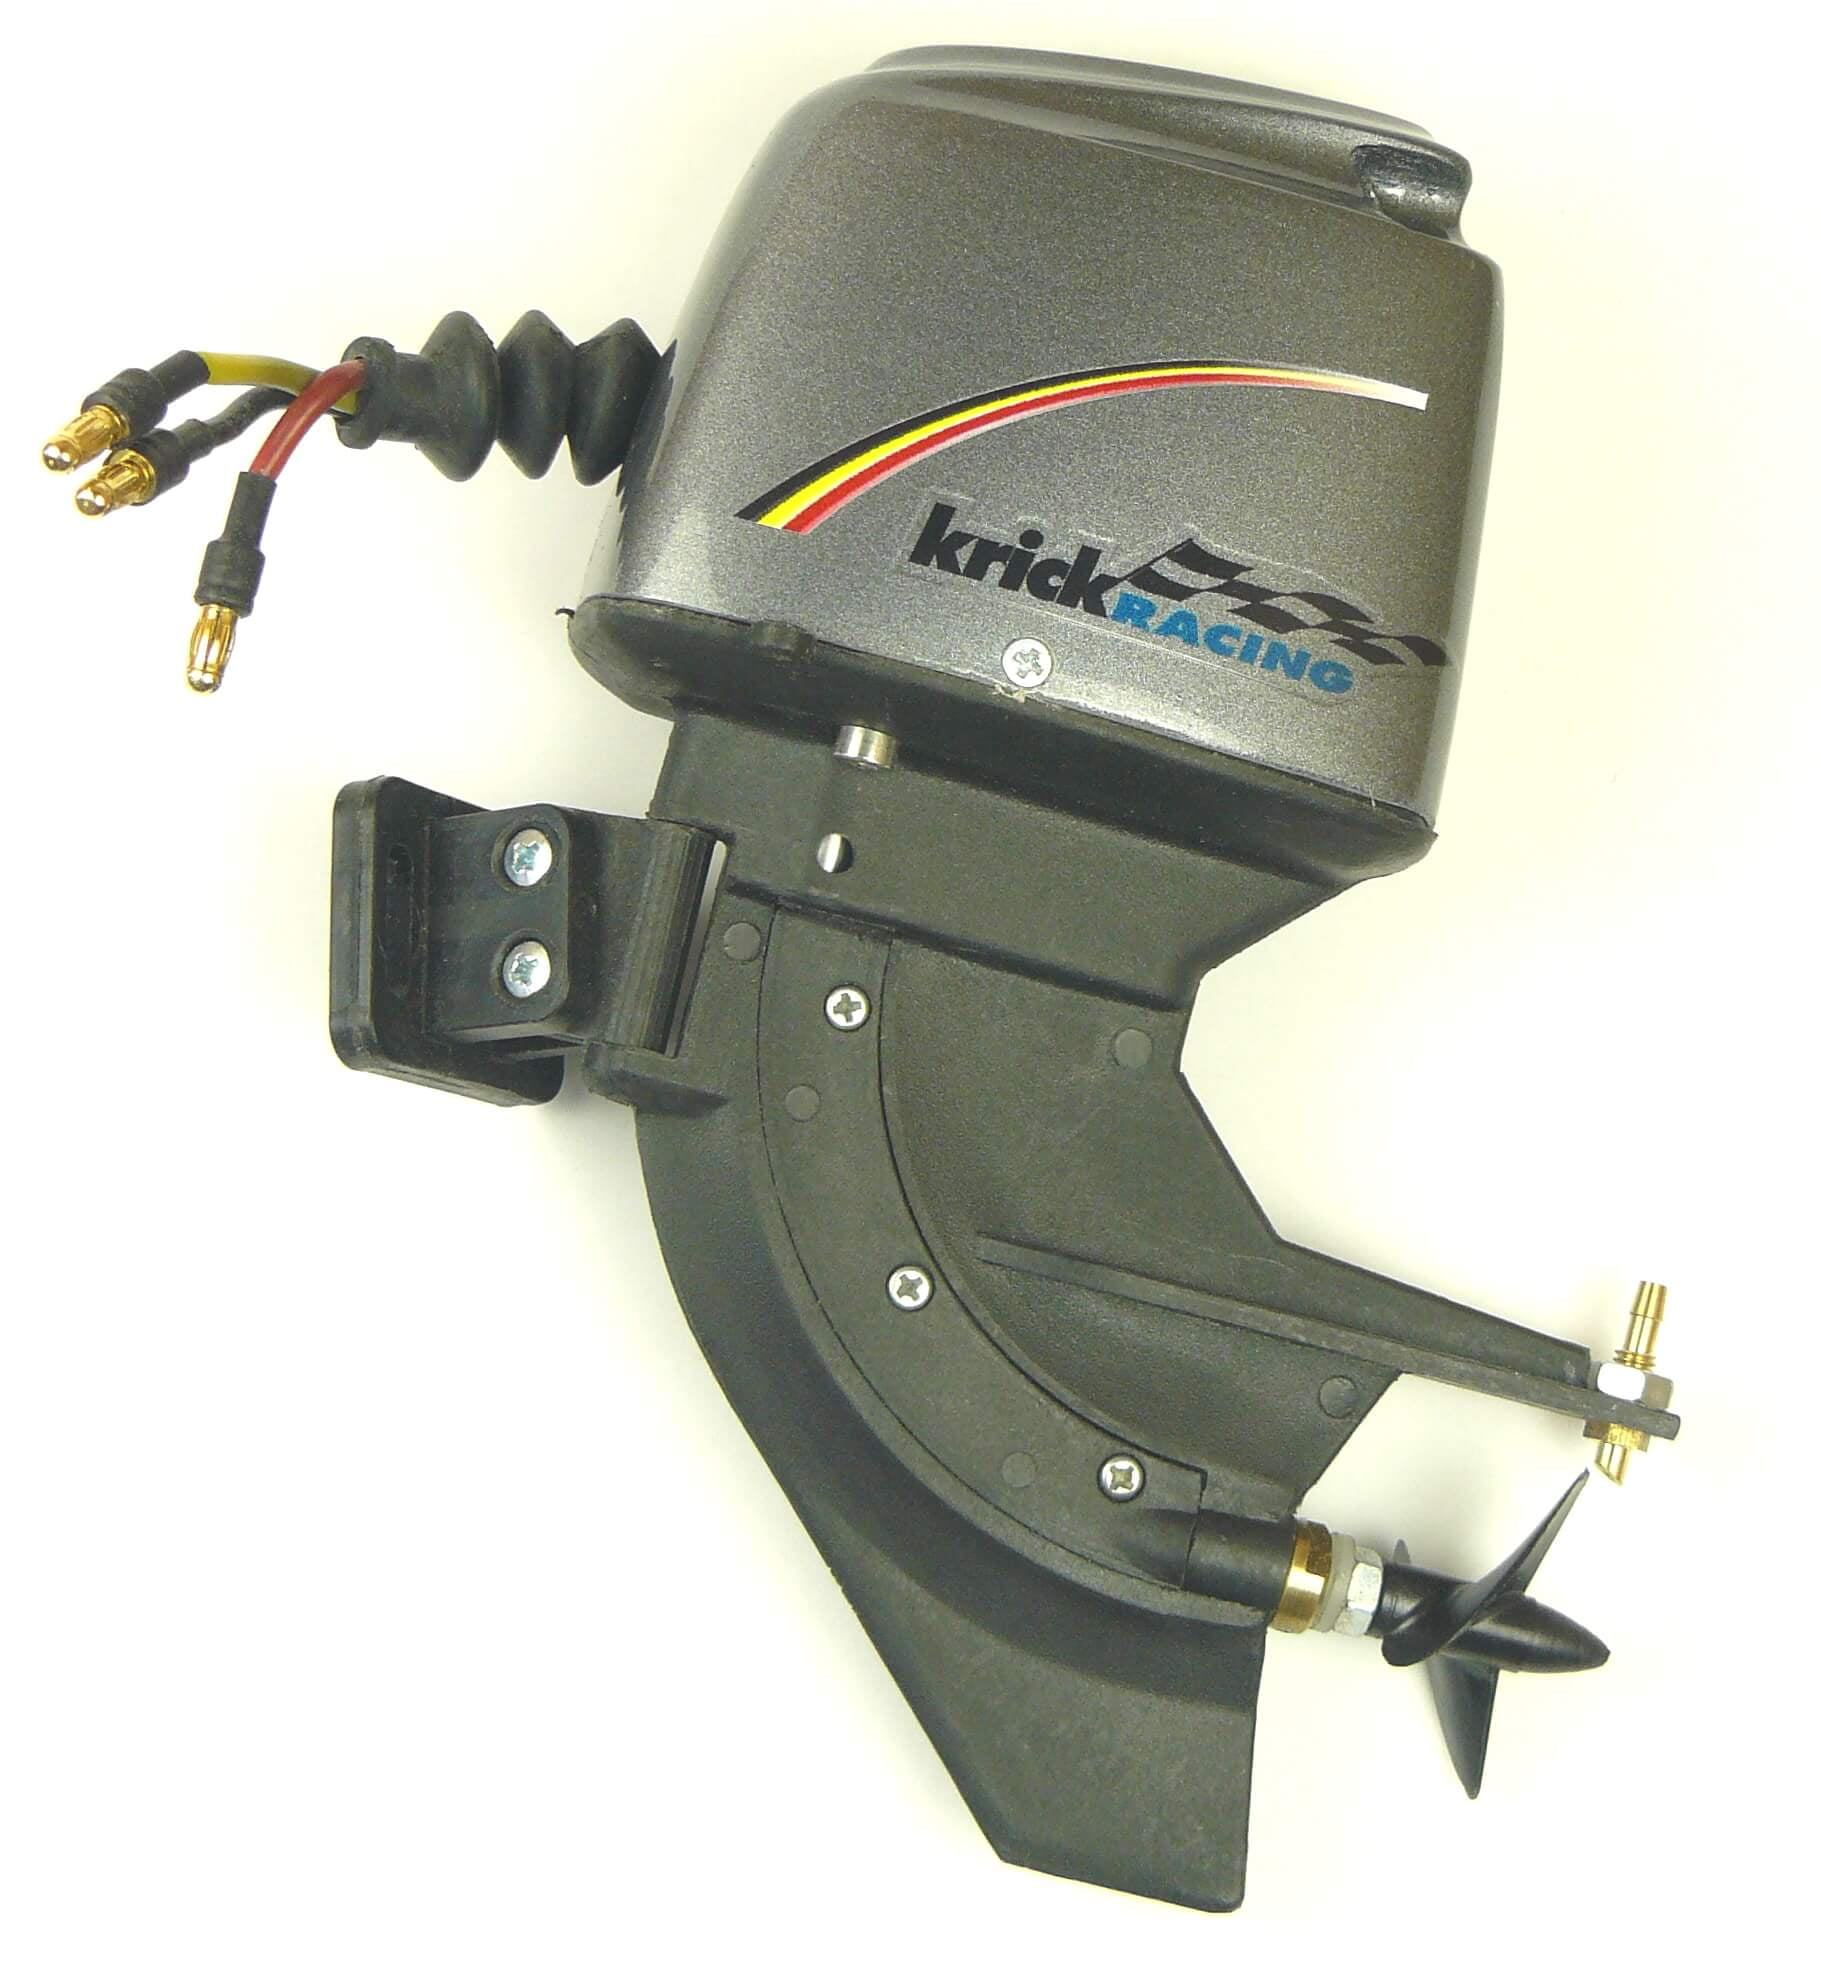 Krick Pan 21 Outboard Motor 26315 Hobbies